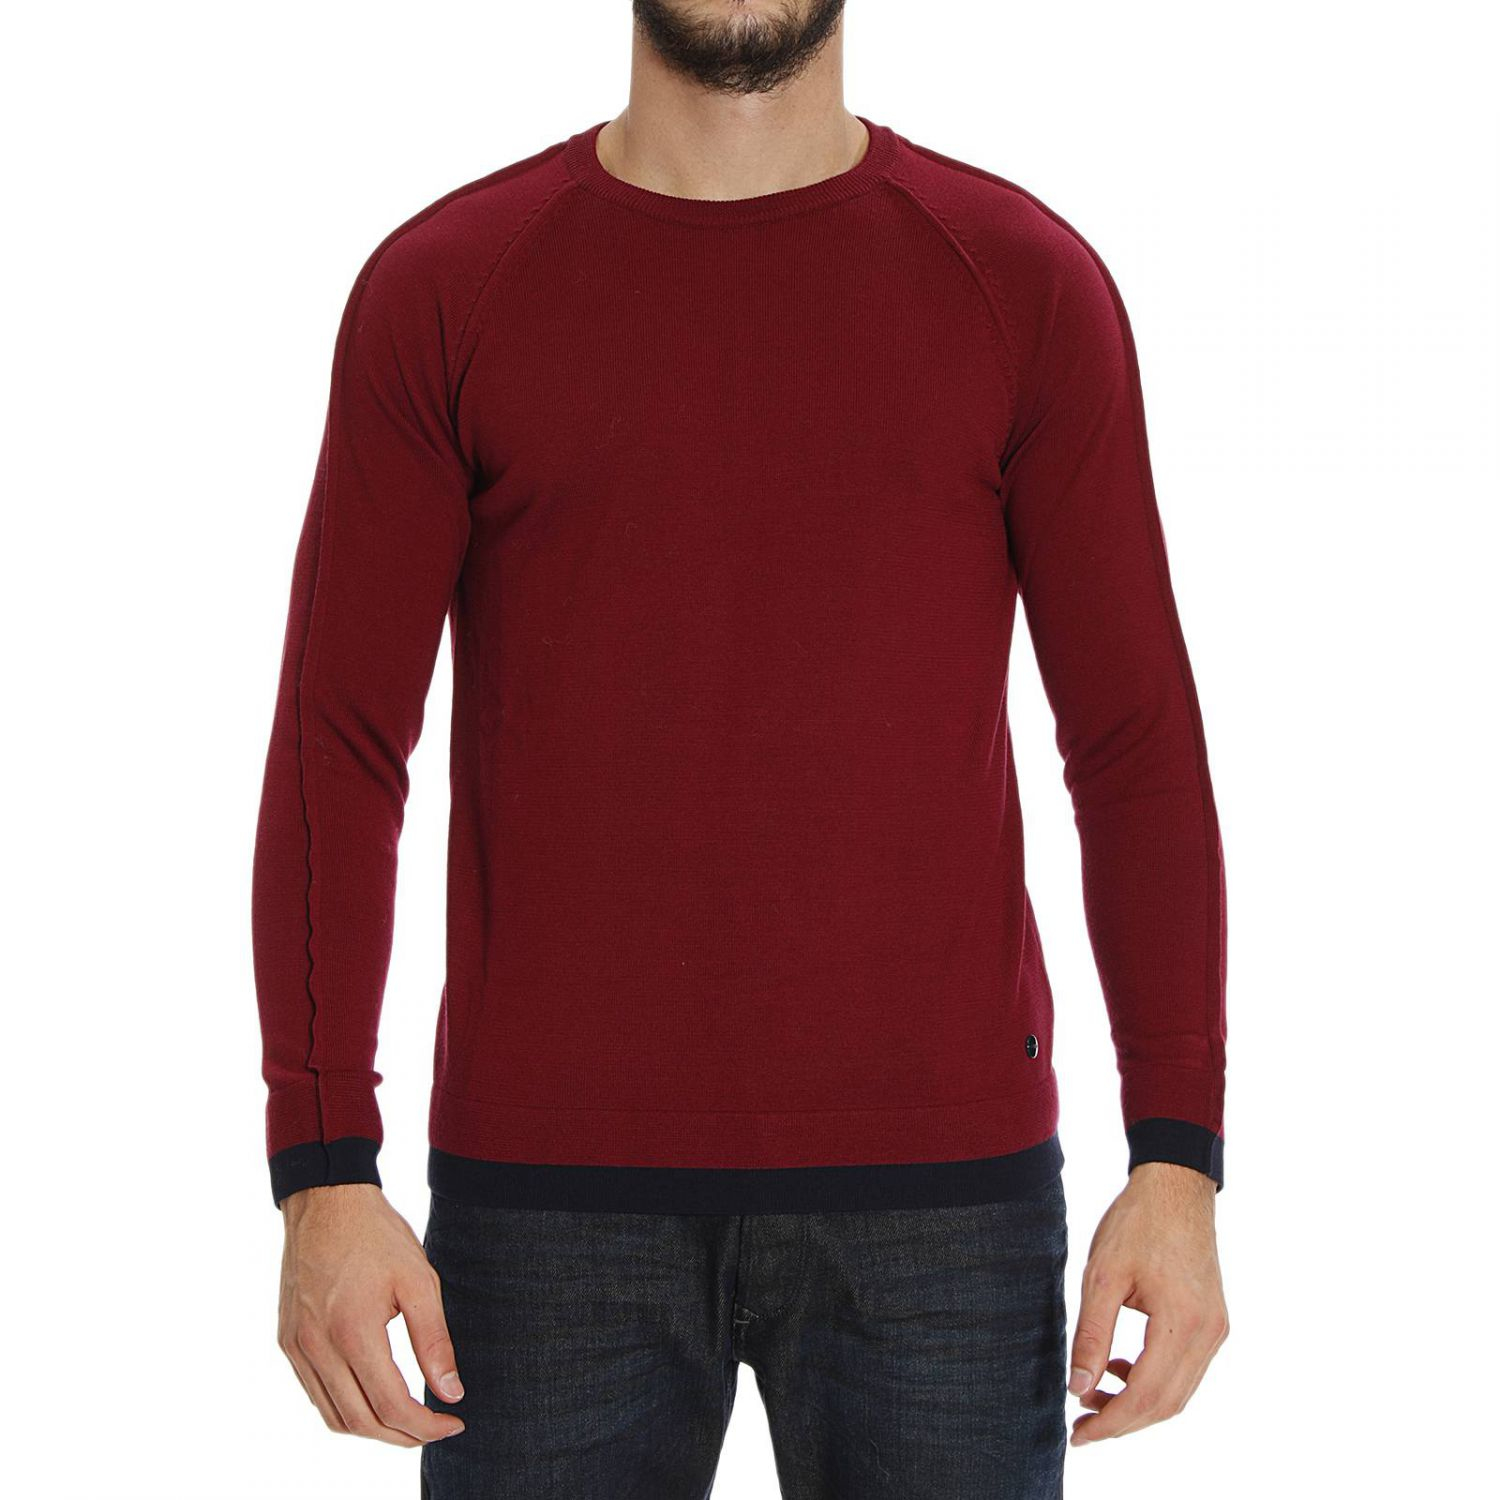 Men s Sweaters. Warm up to style with men's sweaters! Explore our fresh selection of topnotch knits from your favorite brands, at Macy's. From cozy cardigans to thick pullovers, there are plenty of sweaters to check out.